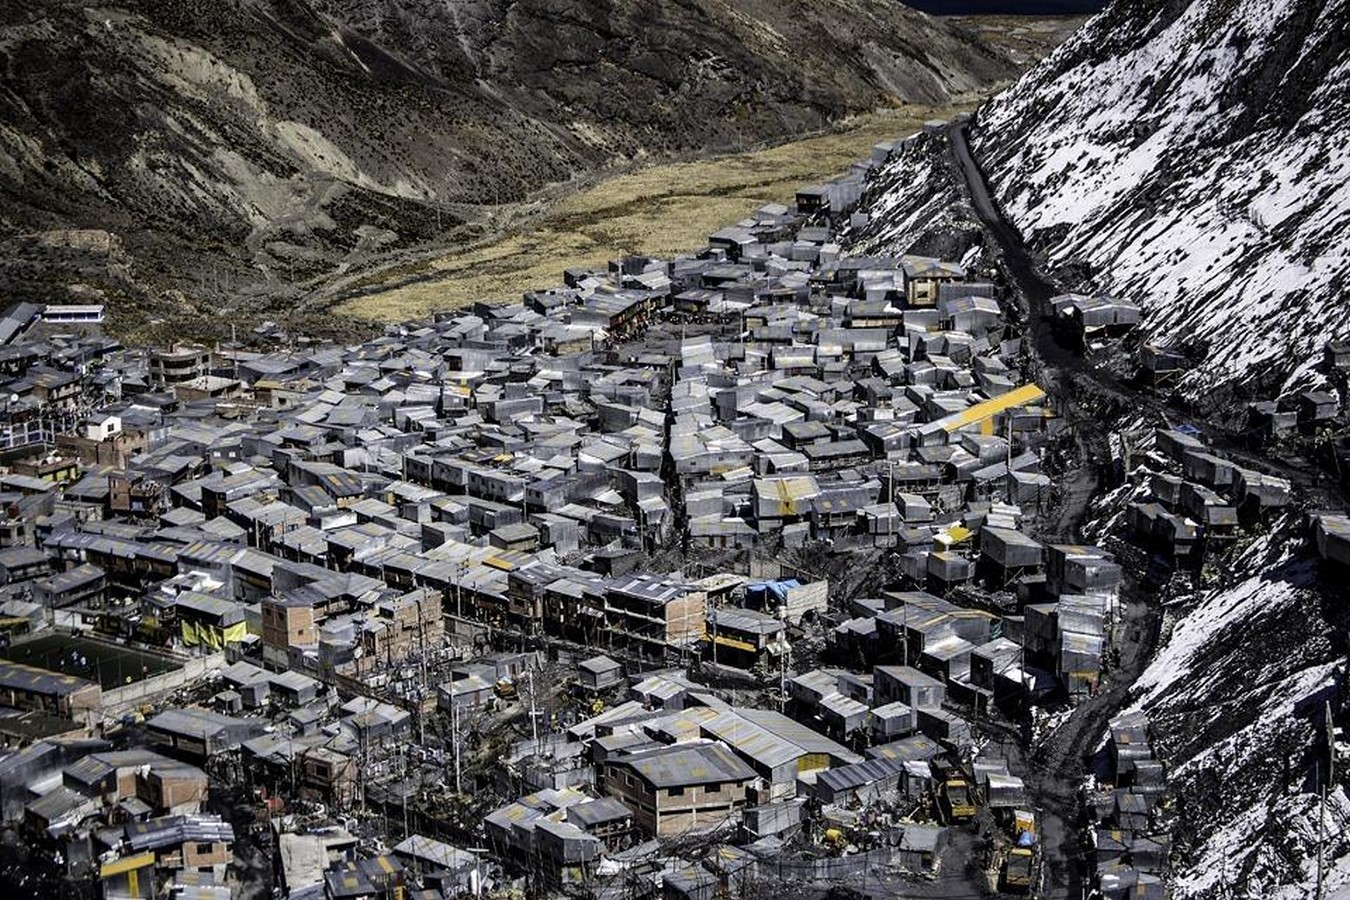 An architectural review of the La Rinconada : The highest human habitation in the world - Sheet2